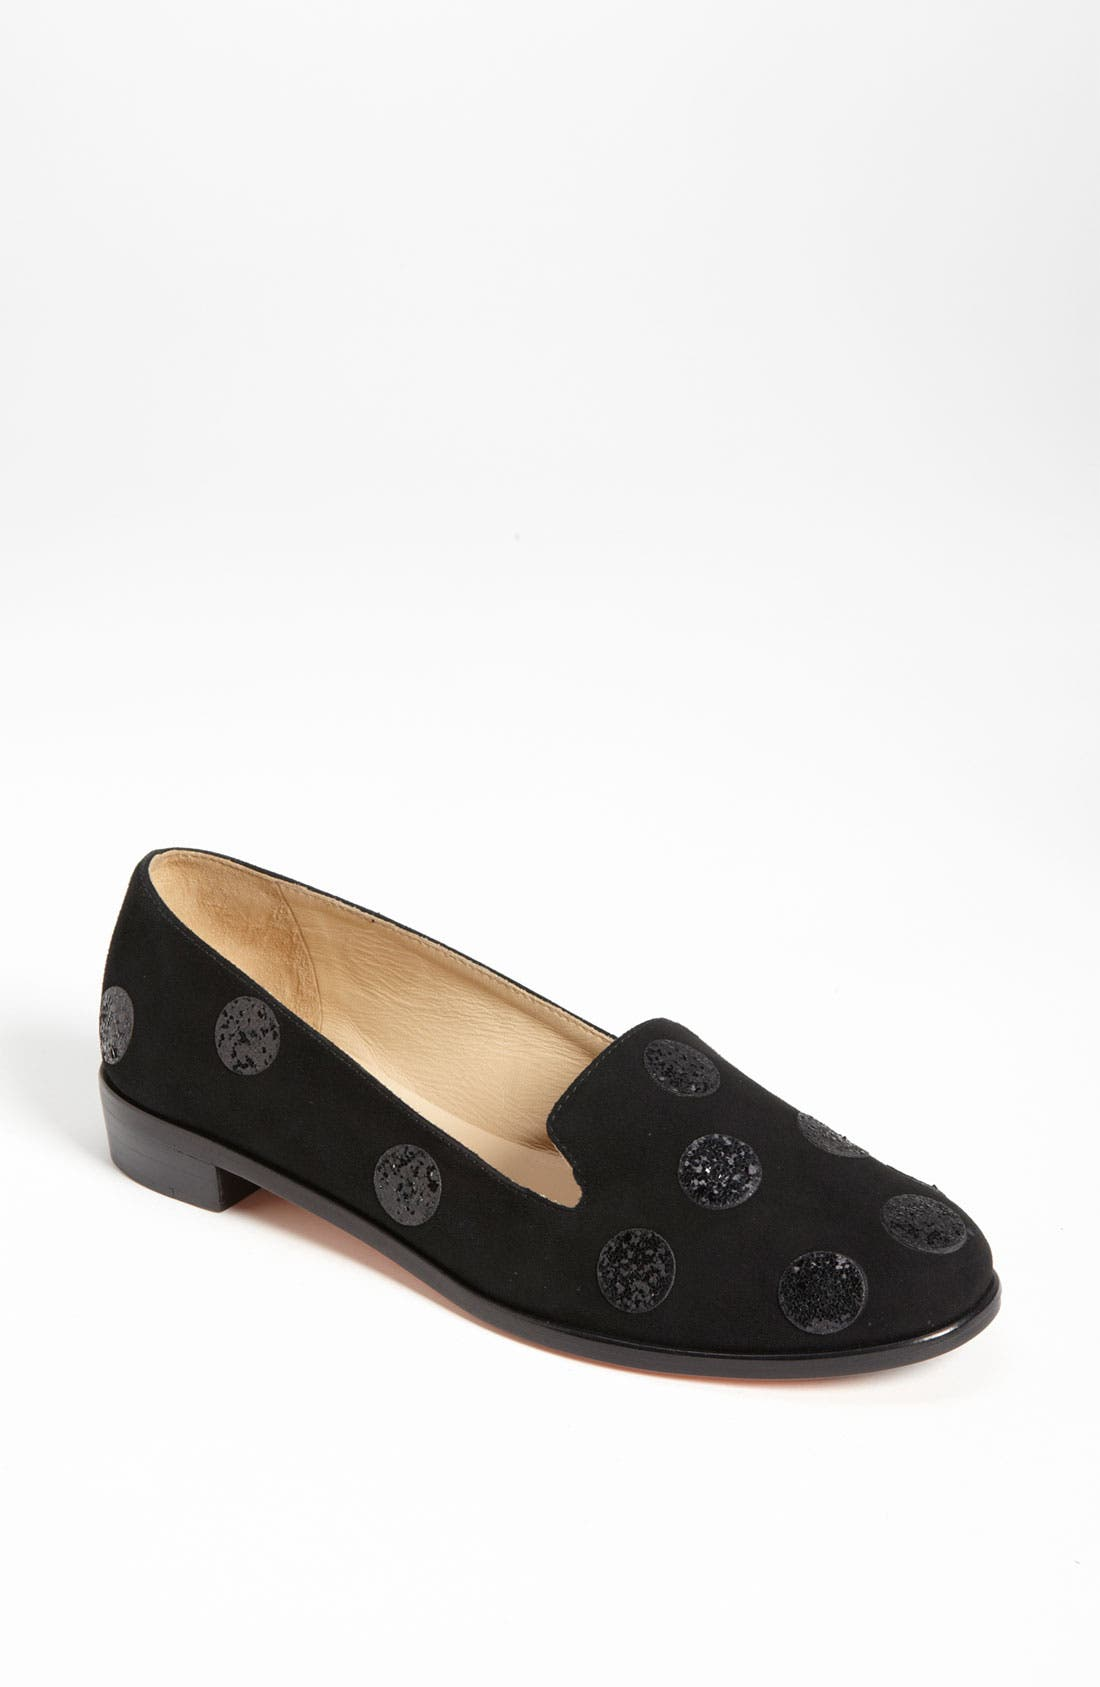 Main Image - kate spade new york 'carissa' loafer